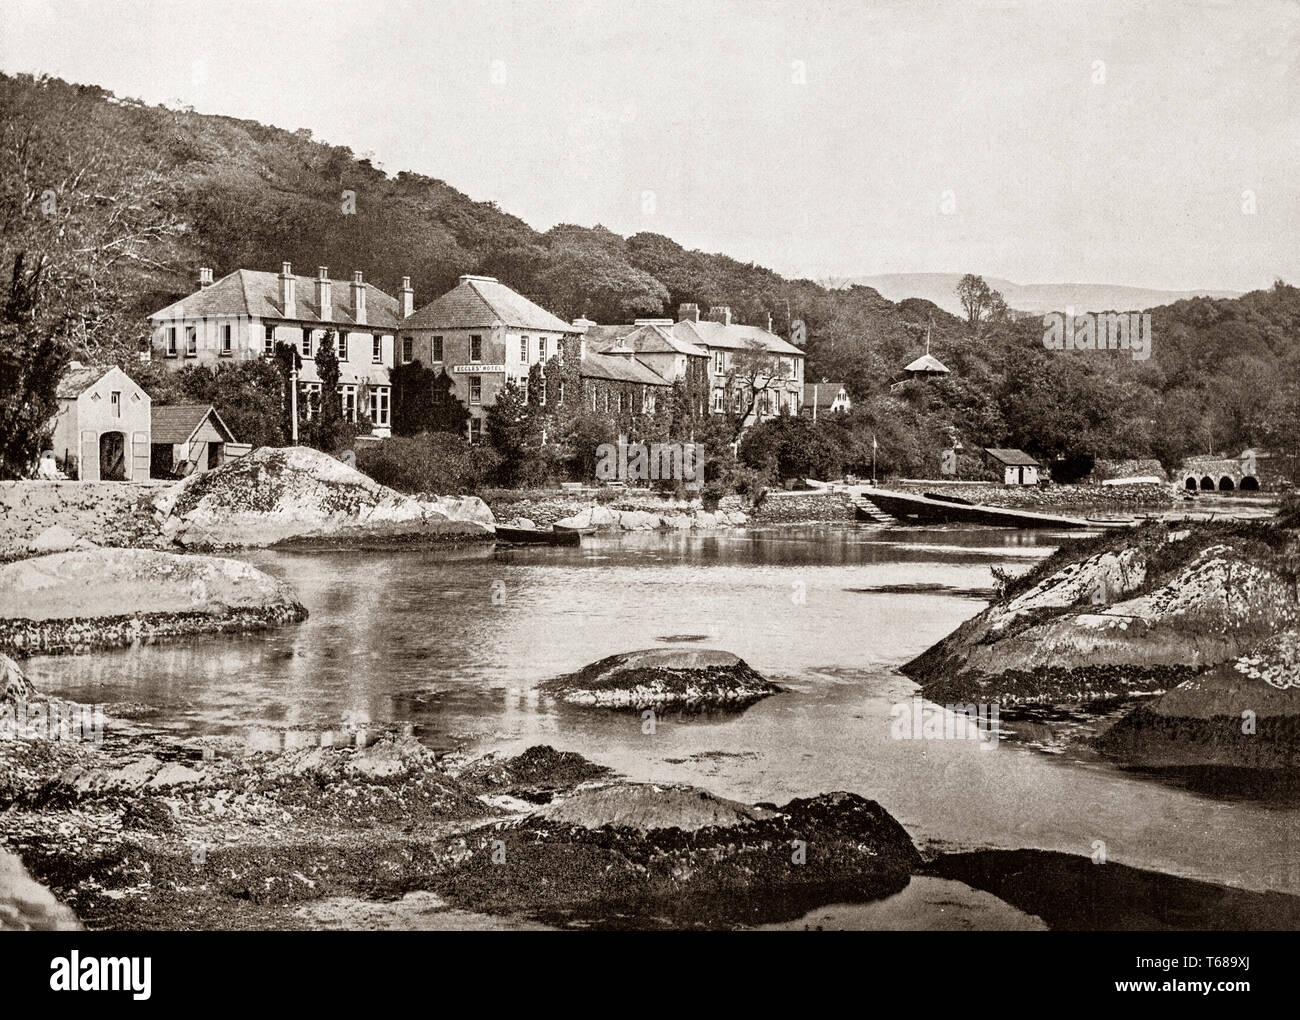 19th Century view of Eccles Hotel in Glengarriff, a village in the Beara Peninsula of County Cork, Ireland. Known internationally as a tourism venue, it boasts many natural attractions. It sits at the northern head of Glengarriff Bay, a smaller enclave of Bantry Bay. - Stock Image